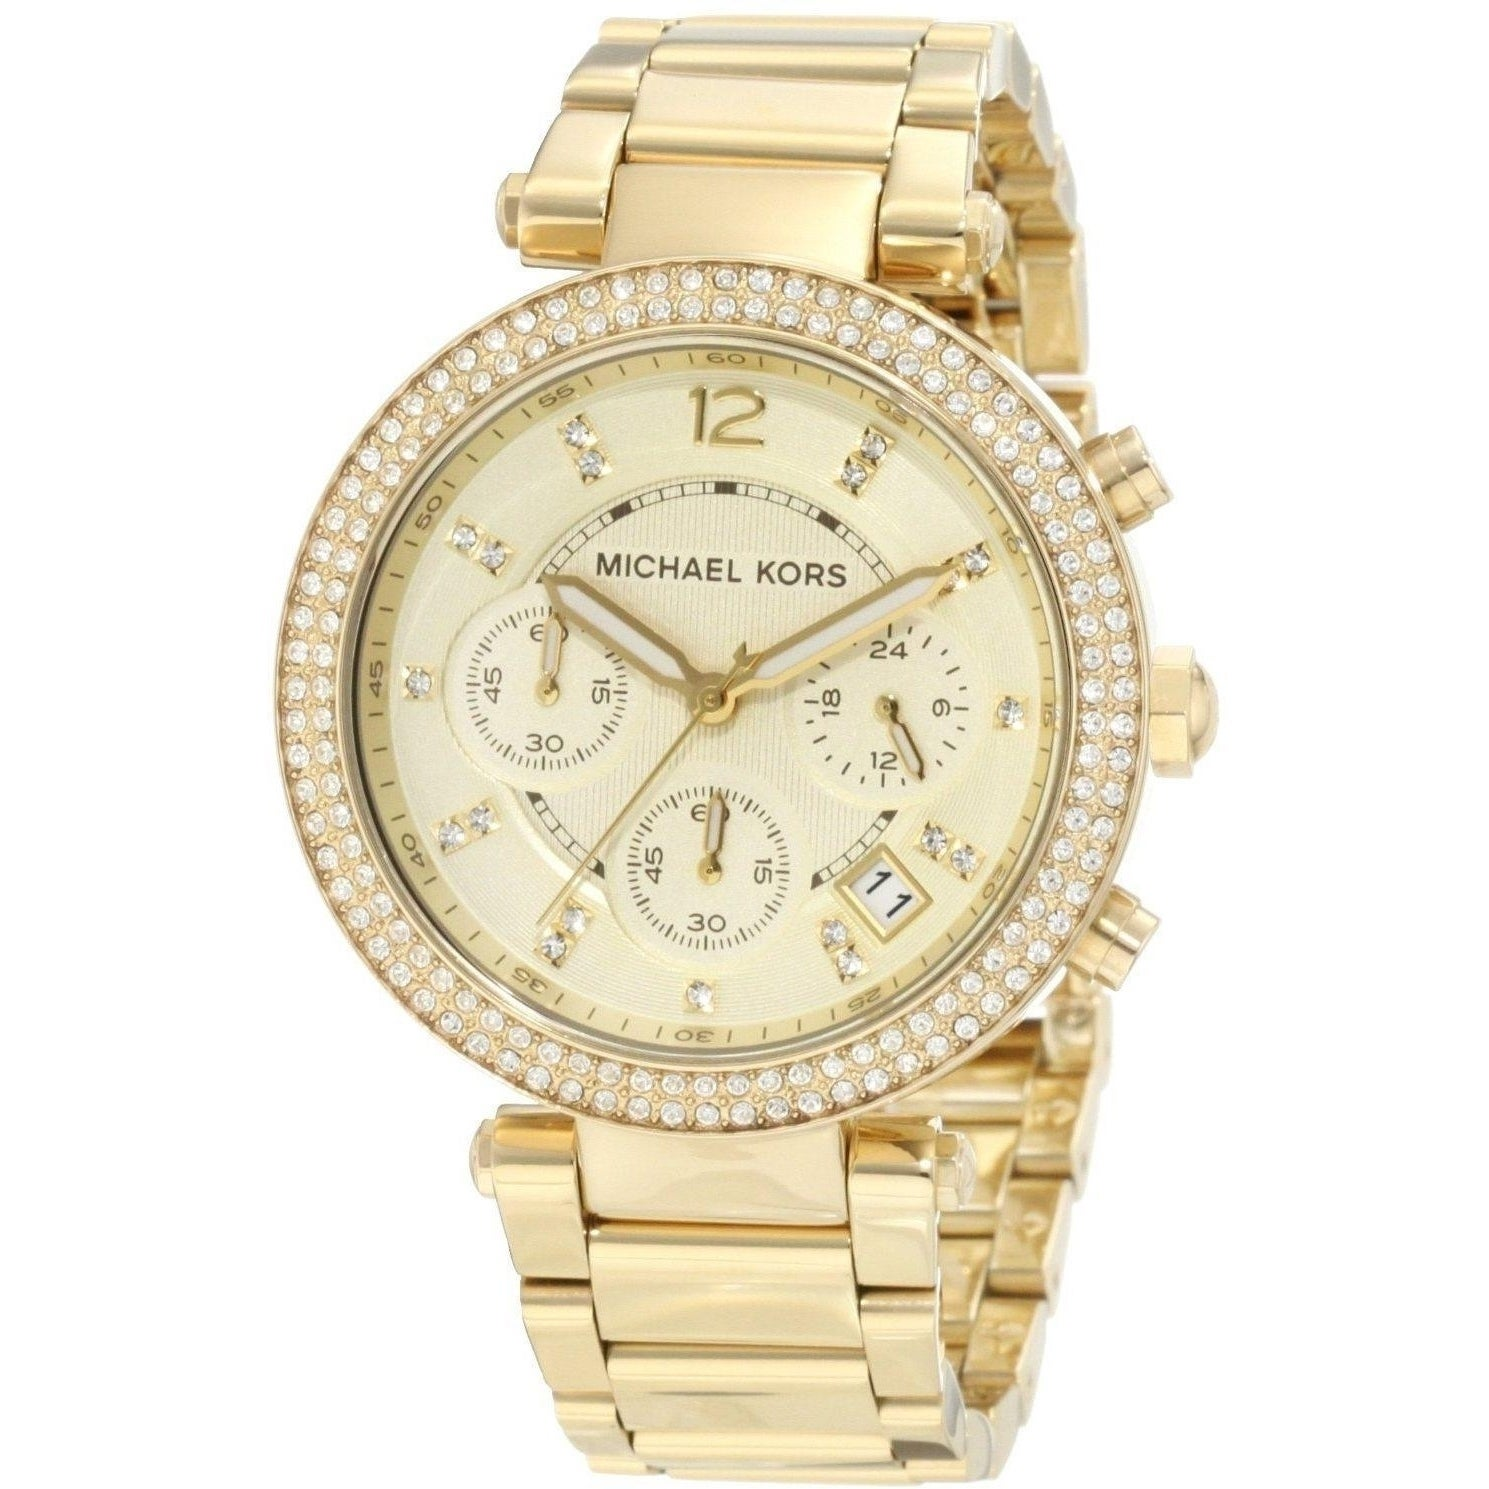 138a5bcf535f4 Shop Michael Kors Women s MK5354  Parker  Yellow Gold Stainless Steel Watch  - Free Shipping Today - Overstock - 8700605